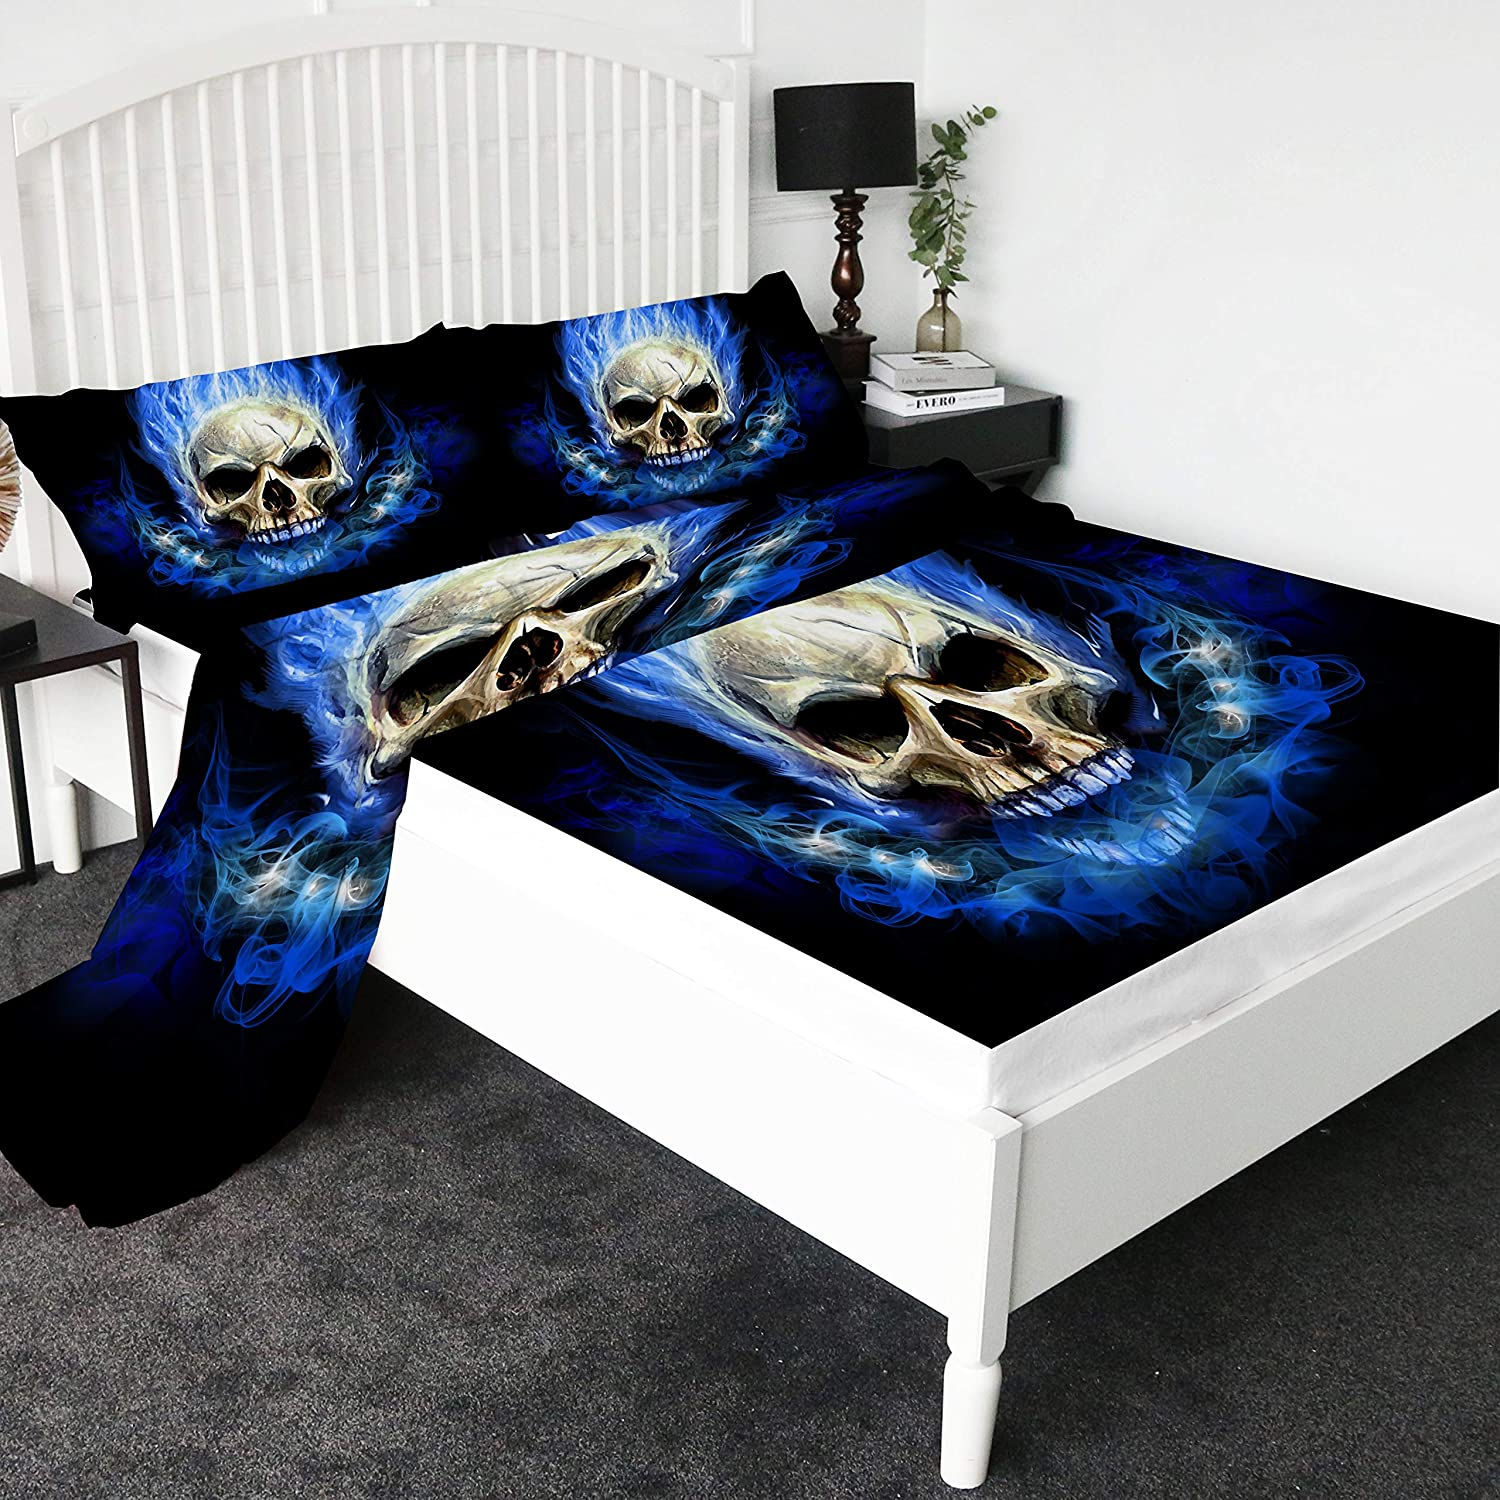 Full Sleepwsih Blue Skull Fire Duvet Cover Set 3 Pieces Skeleton Bedding Tribal Bedding Set Boys Black and Blue Ghost Bed Set